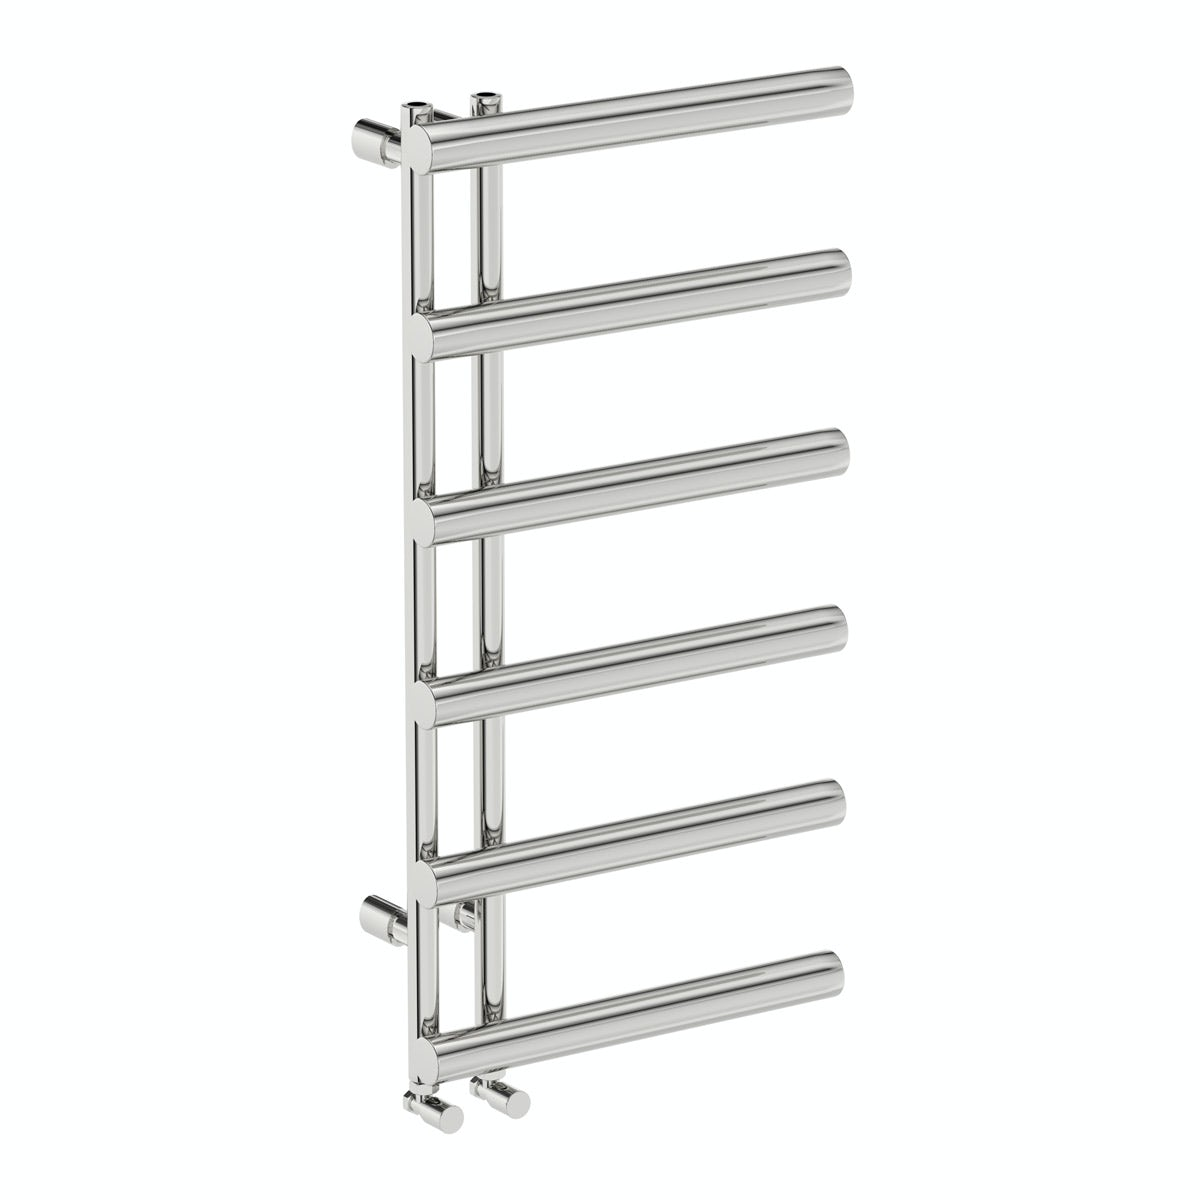 Mode Hardy heated towel rail 1000 x 500 offer pack